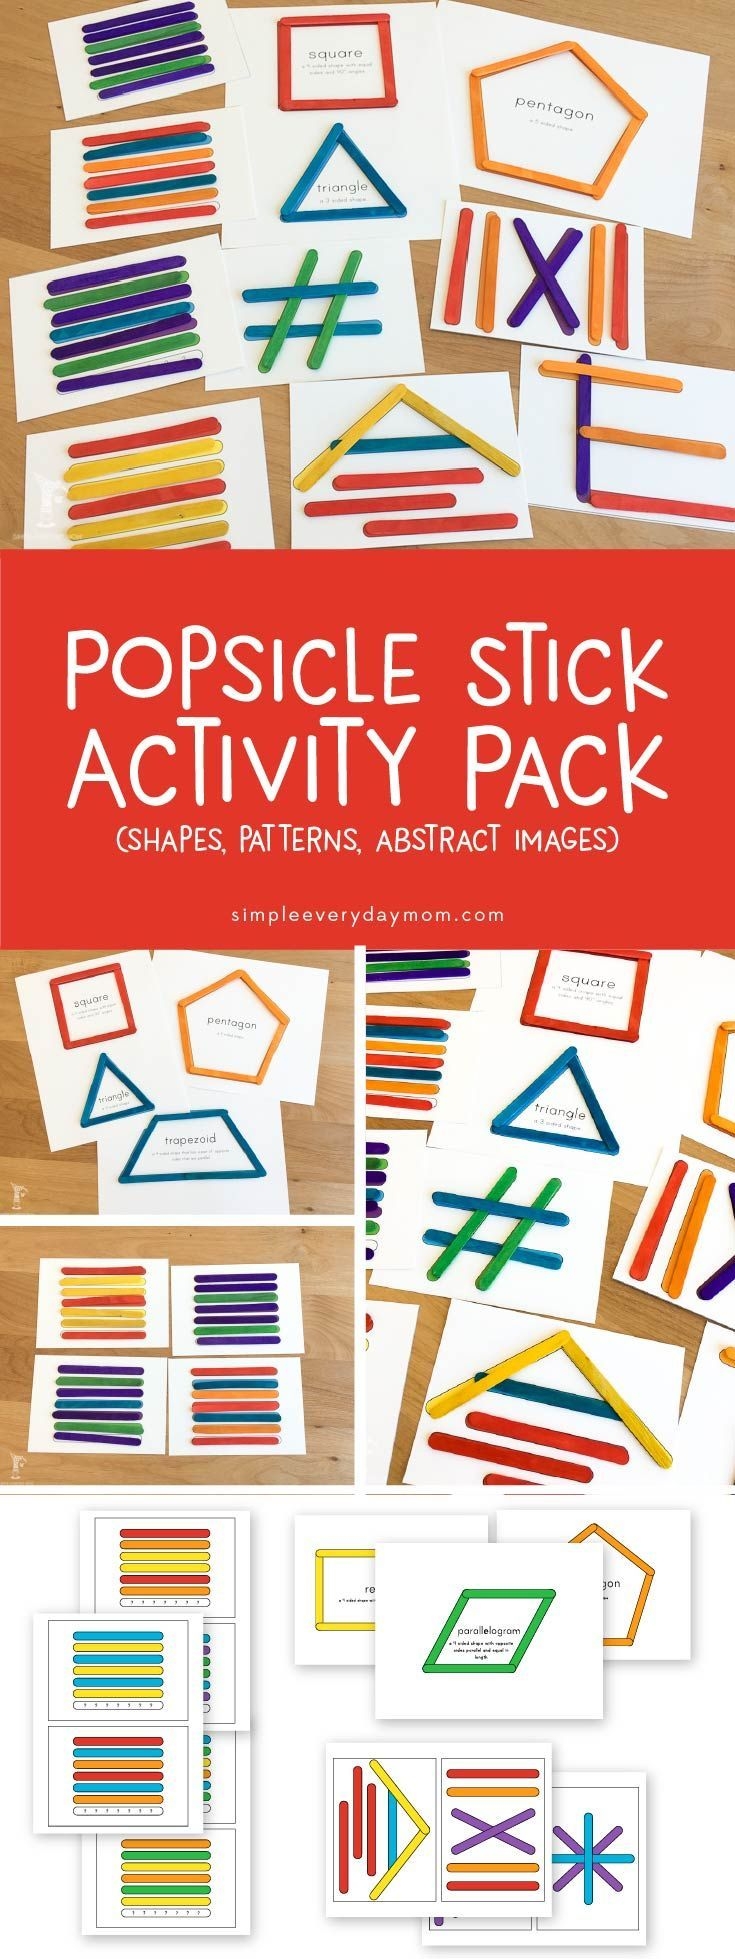 These popsicle stick activities are so fun for kids of all different ages. Toddlers will love matching, while older Elementary aged kids will be challenged while they try to figure out the pattern and build abstract shapes in the correct order. It's a fun